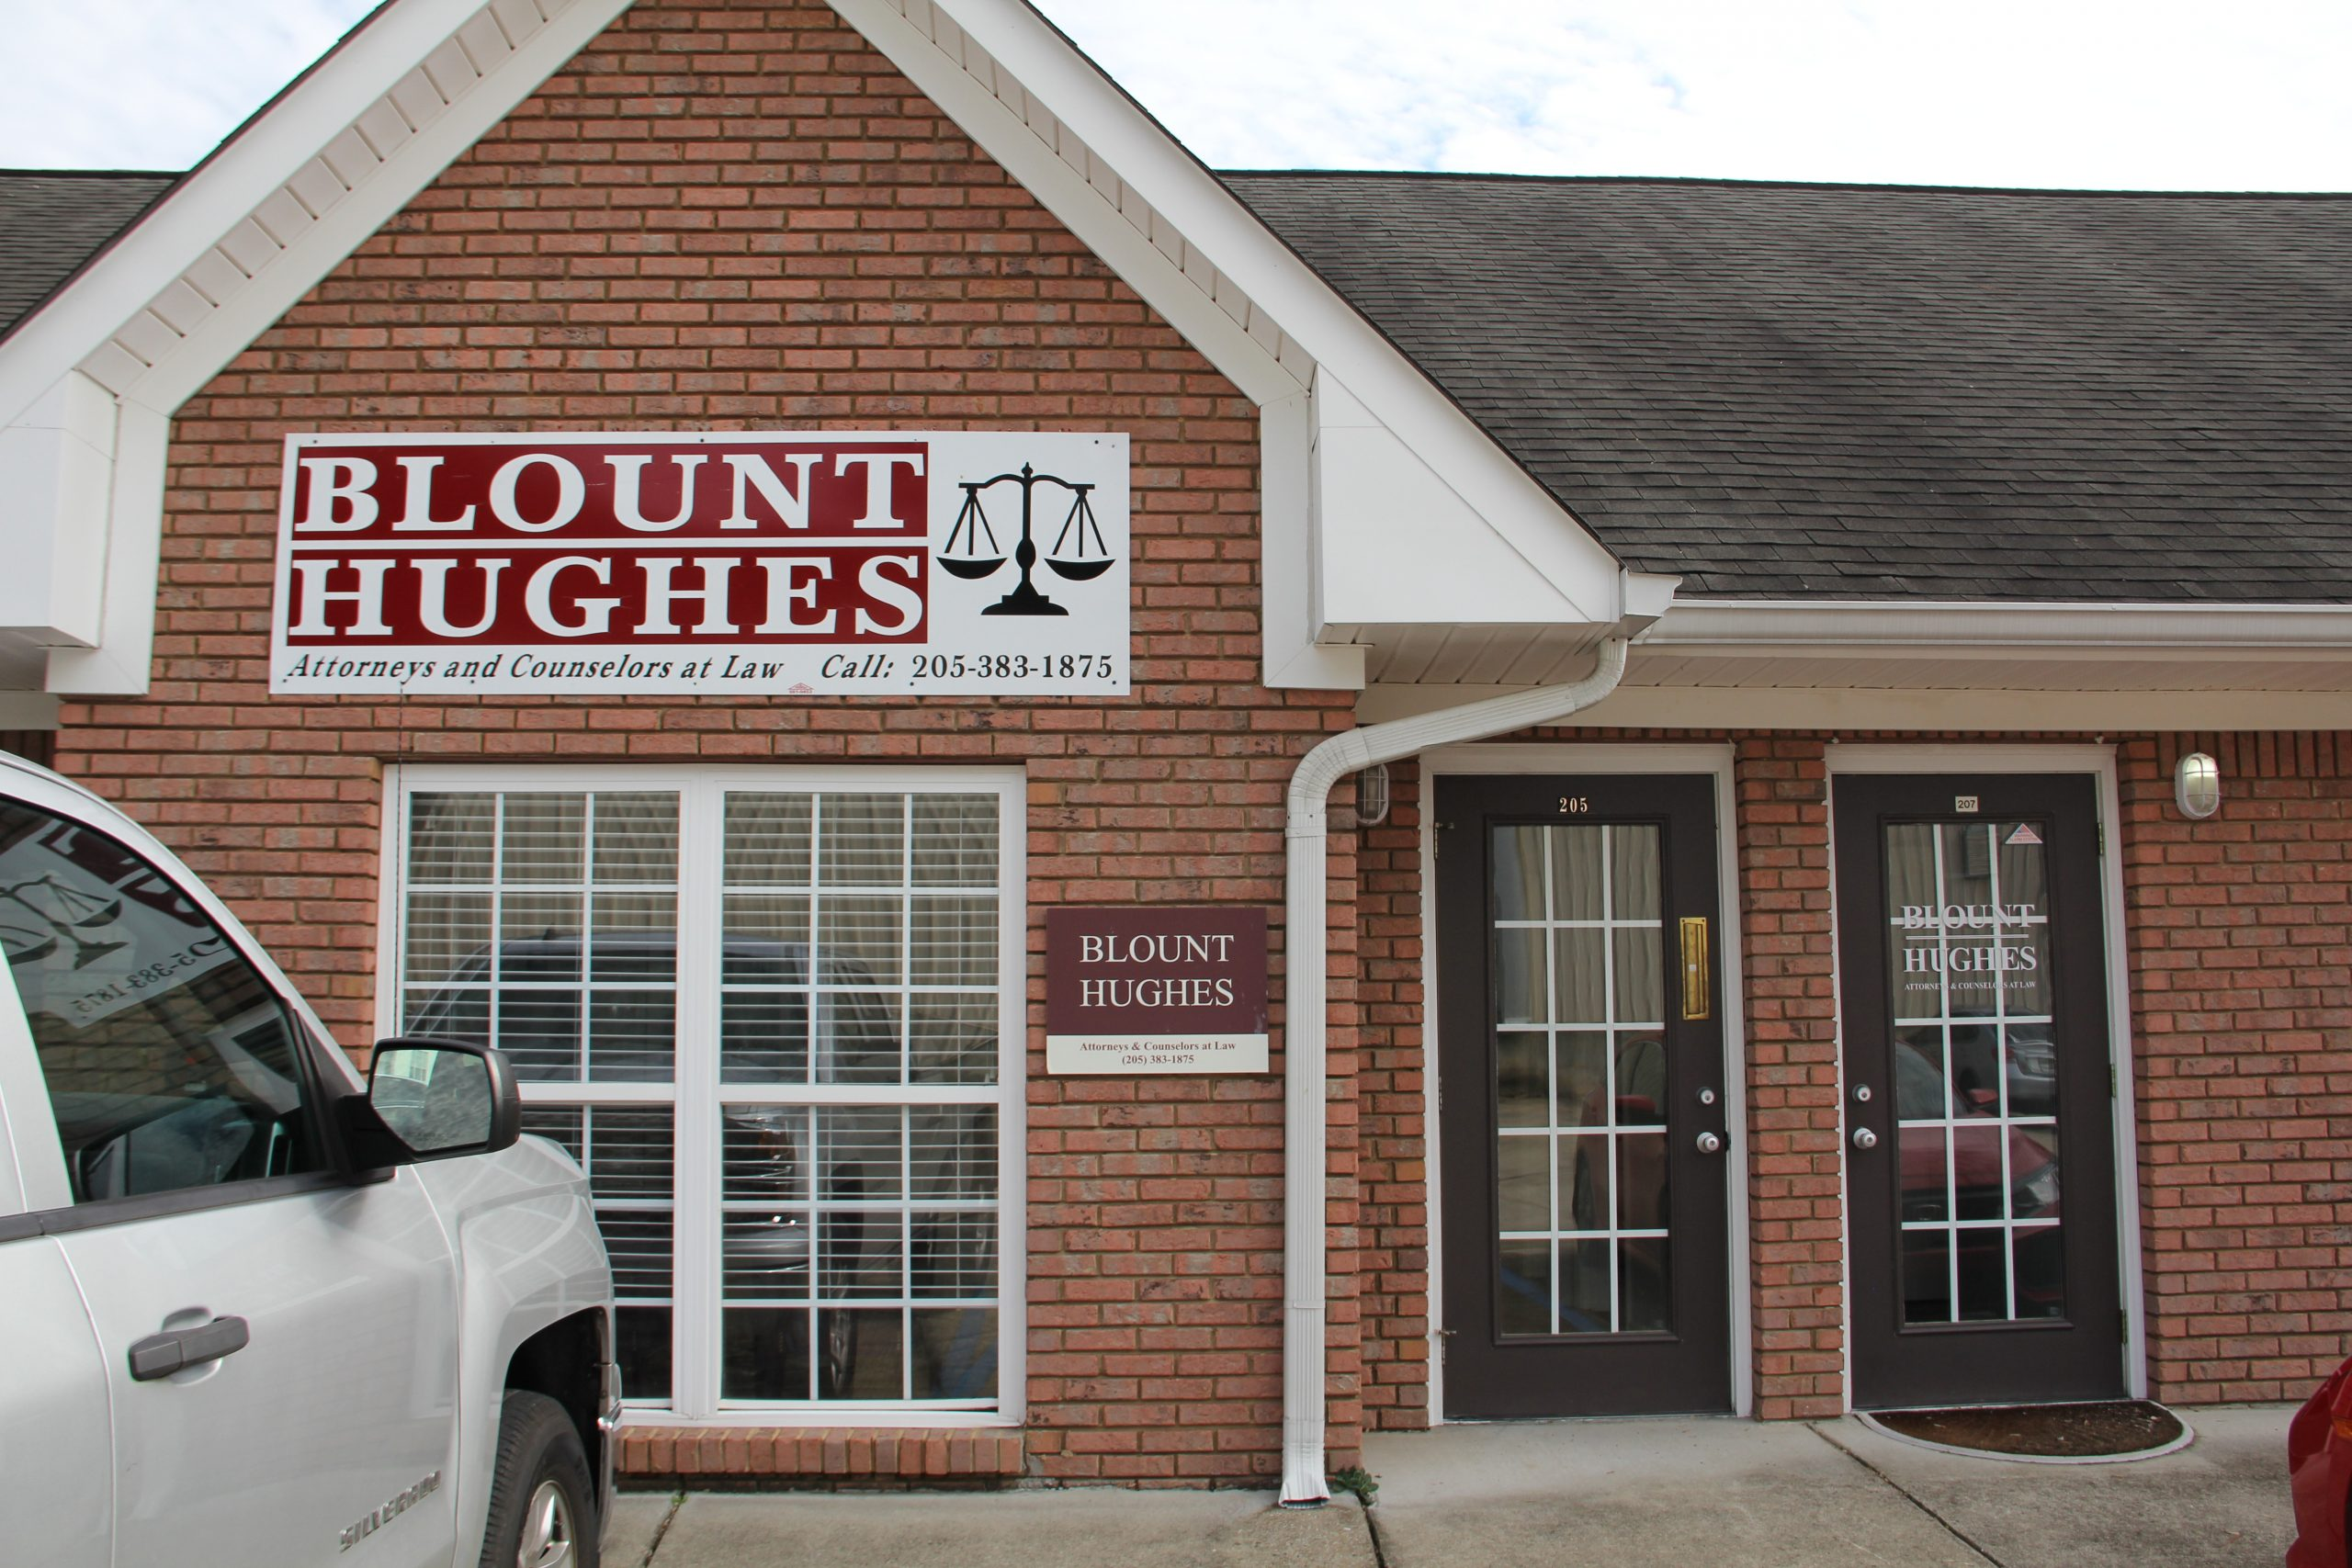 Blount Hughes LLC: An Alabama law firm for Alabama families